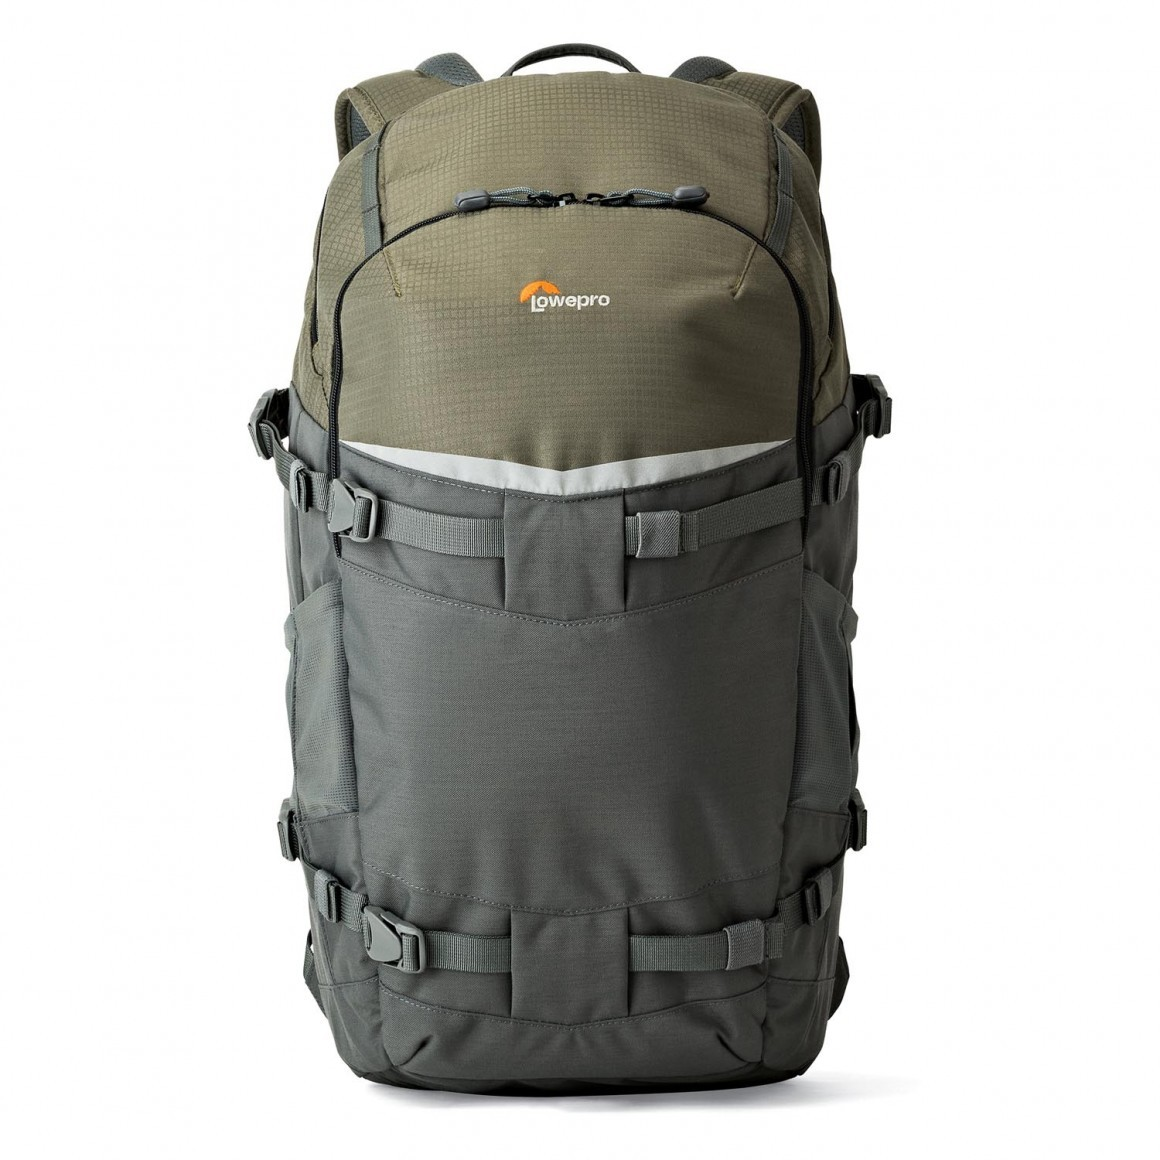 Lowepro Flipside Trek BP 450 AW (預計送貨需時2-3個月)